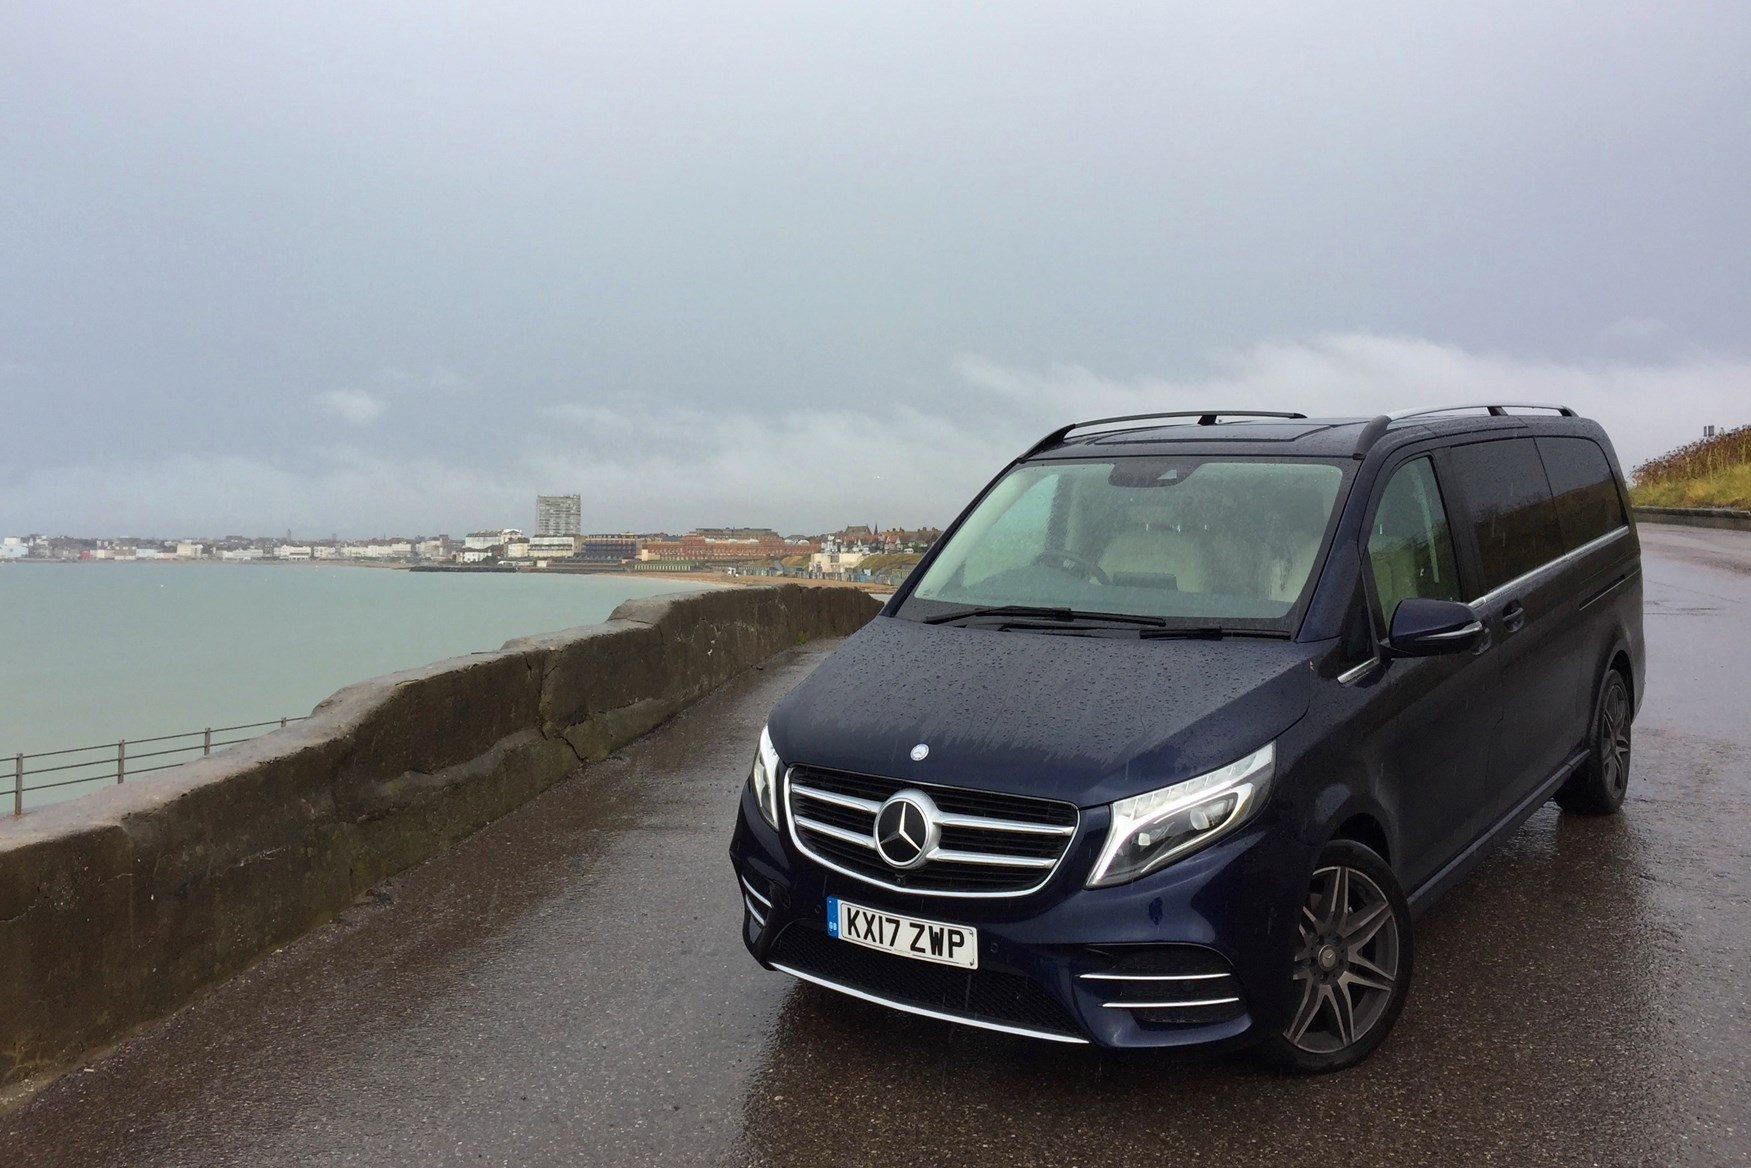 mercedes benz v class amg images galleries with a bite. Black Bedroom Furniture Sets. Home Design Ideas